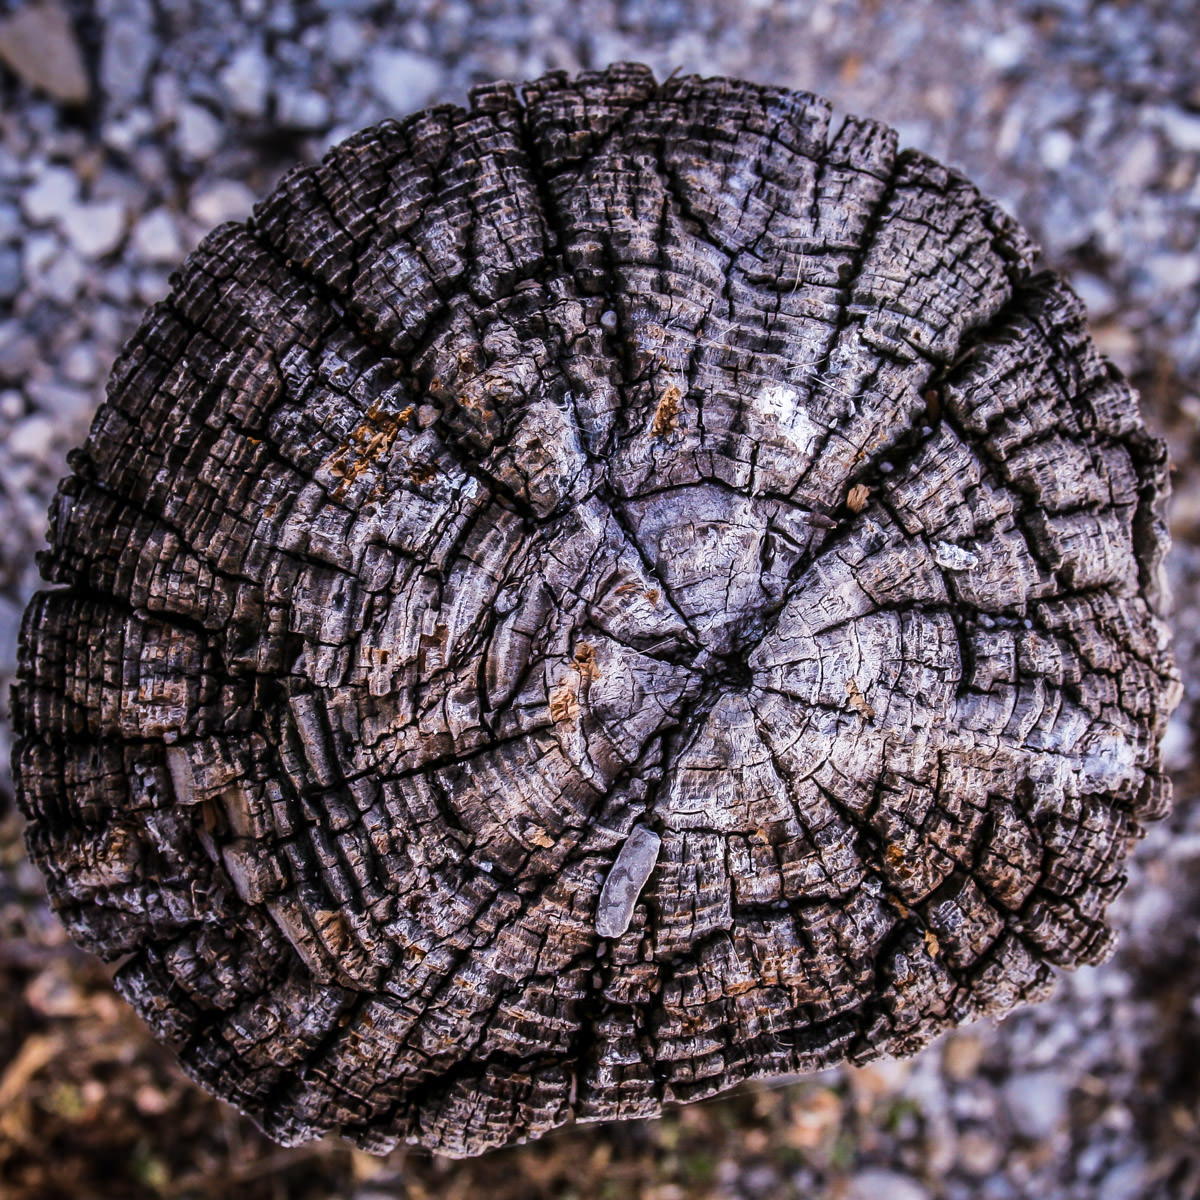 A wooden stump used as a parking barrier at White Rock Lake Park, Dallas, as seen from above.